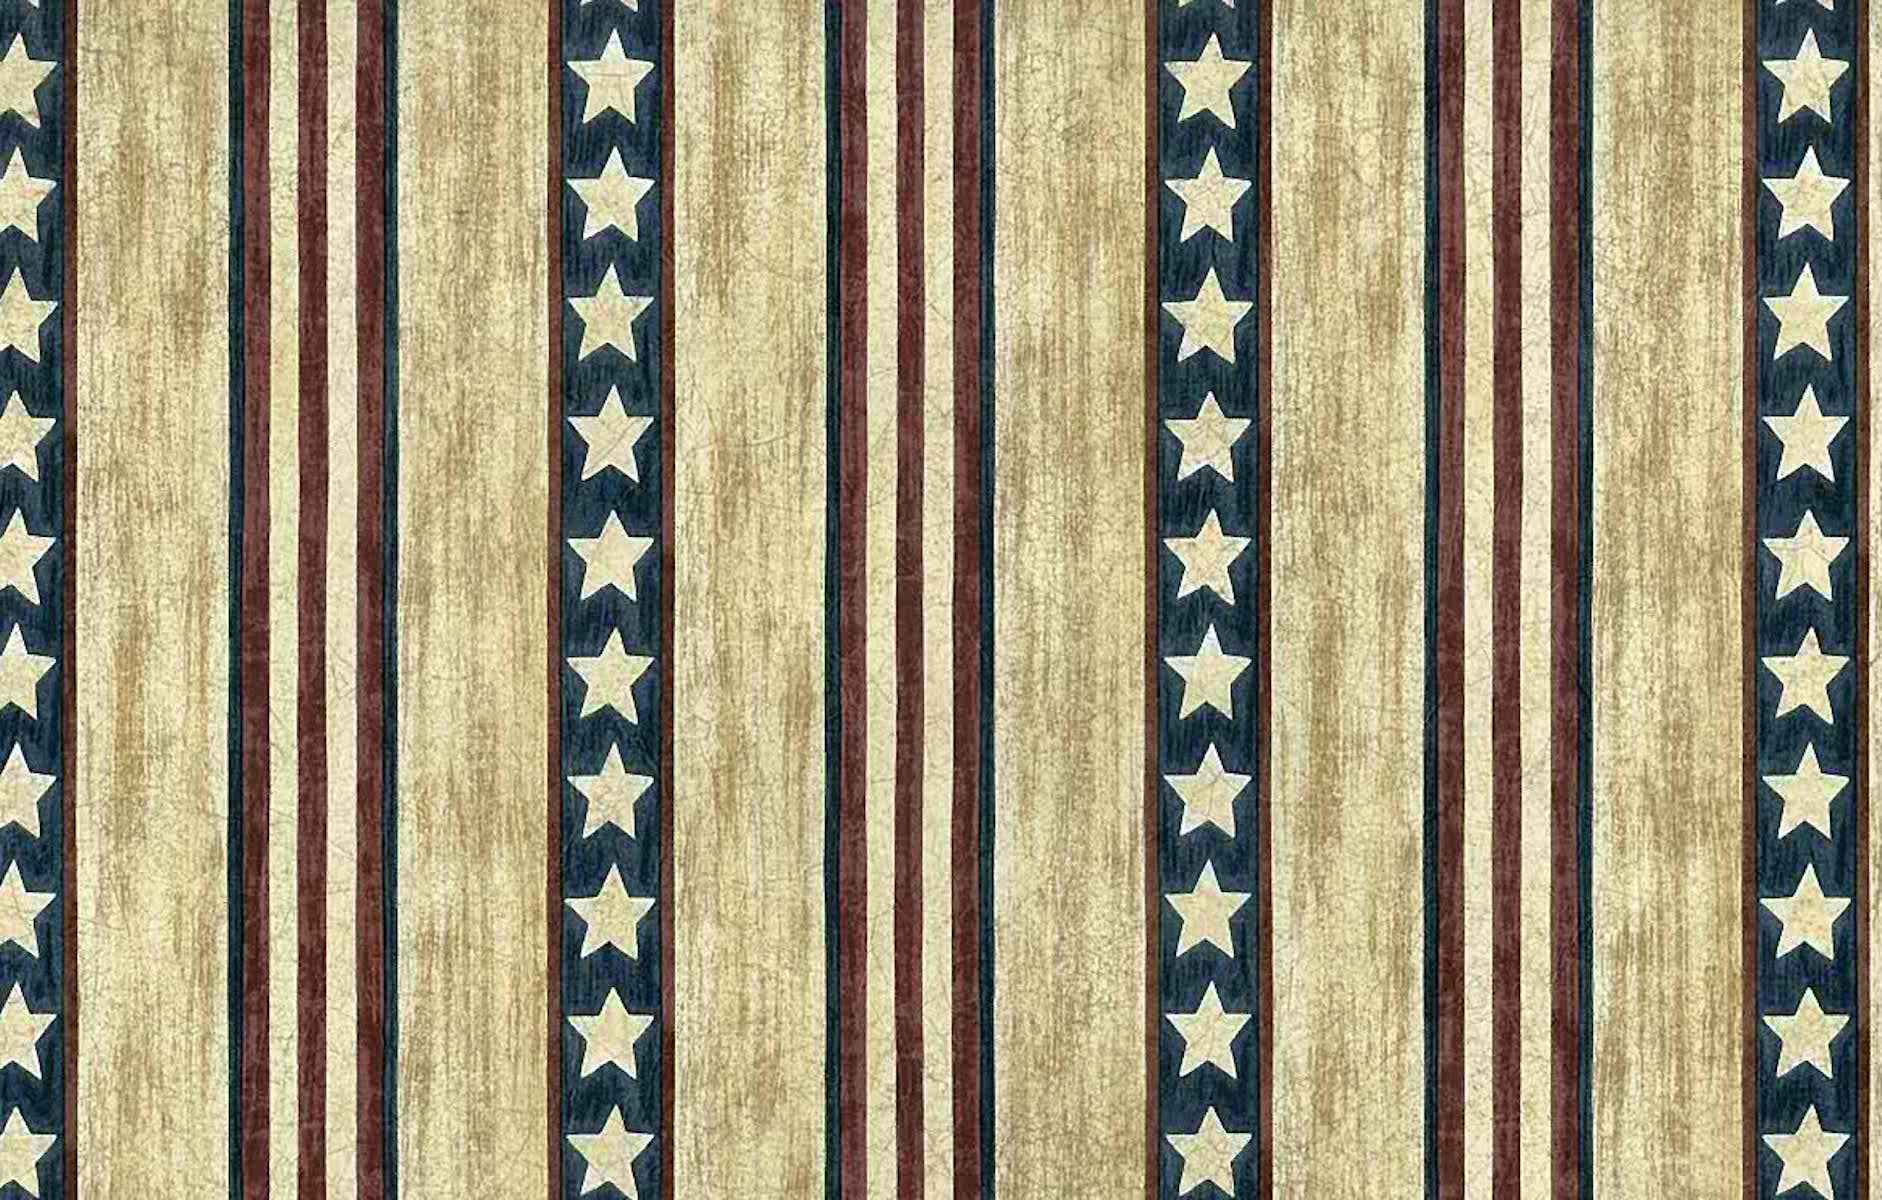 Striped Vintage Wallpaper Americana Stars Stripes Tan Blue RG22746